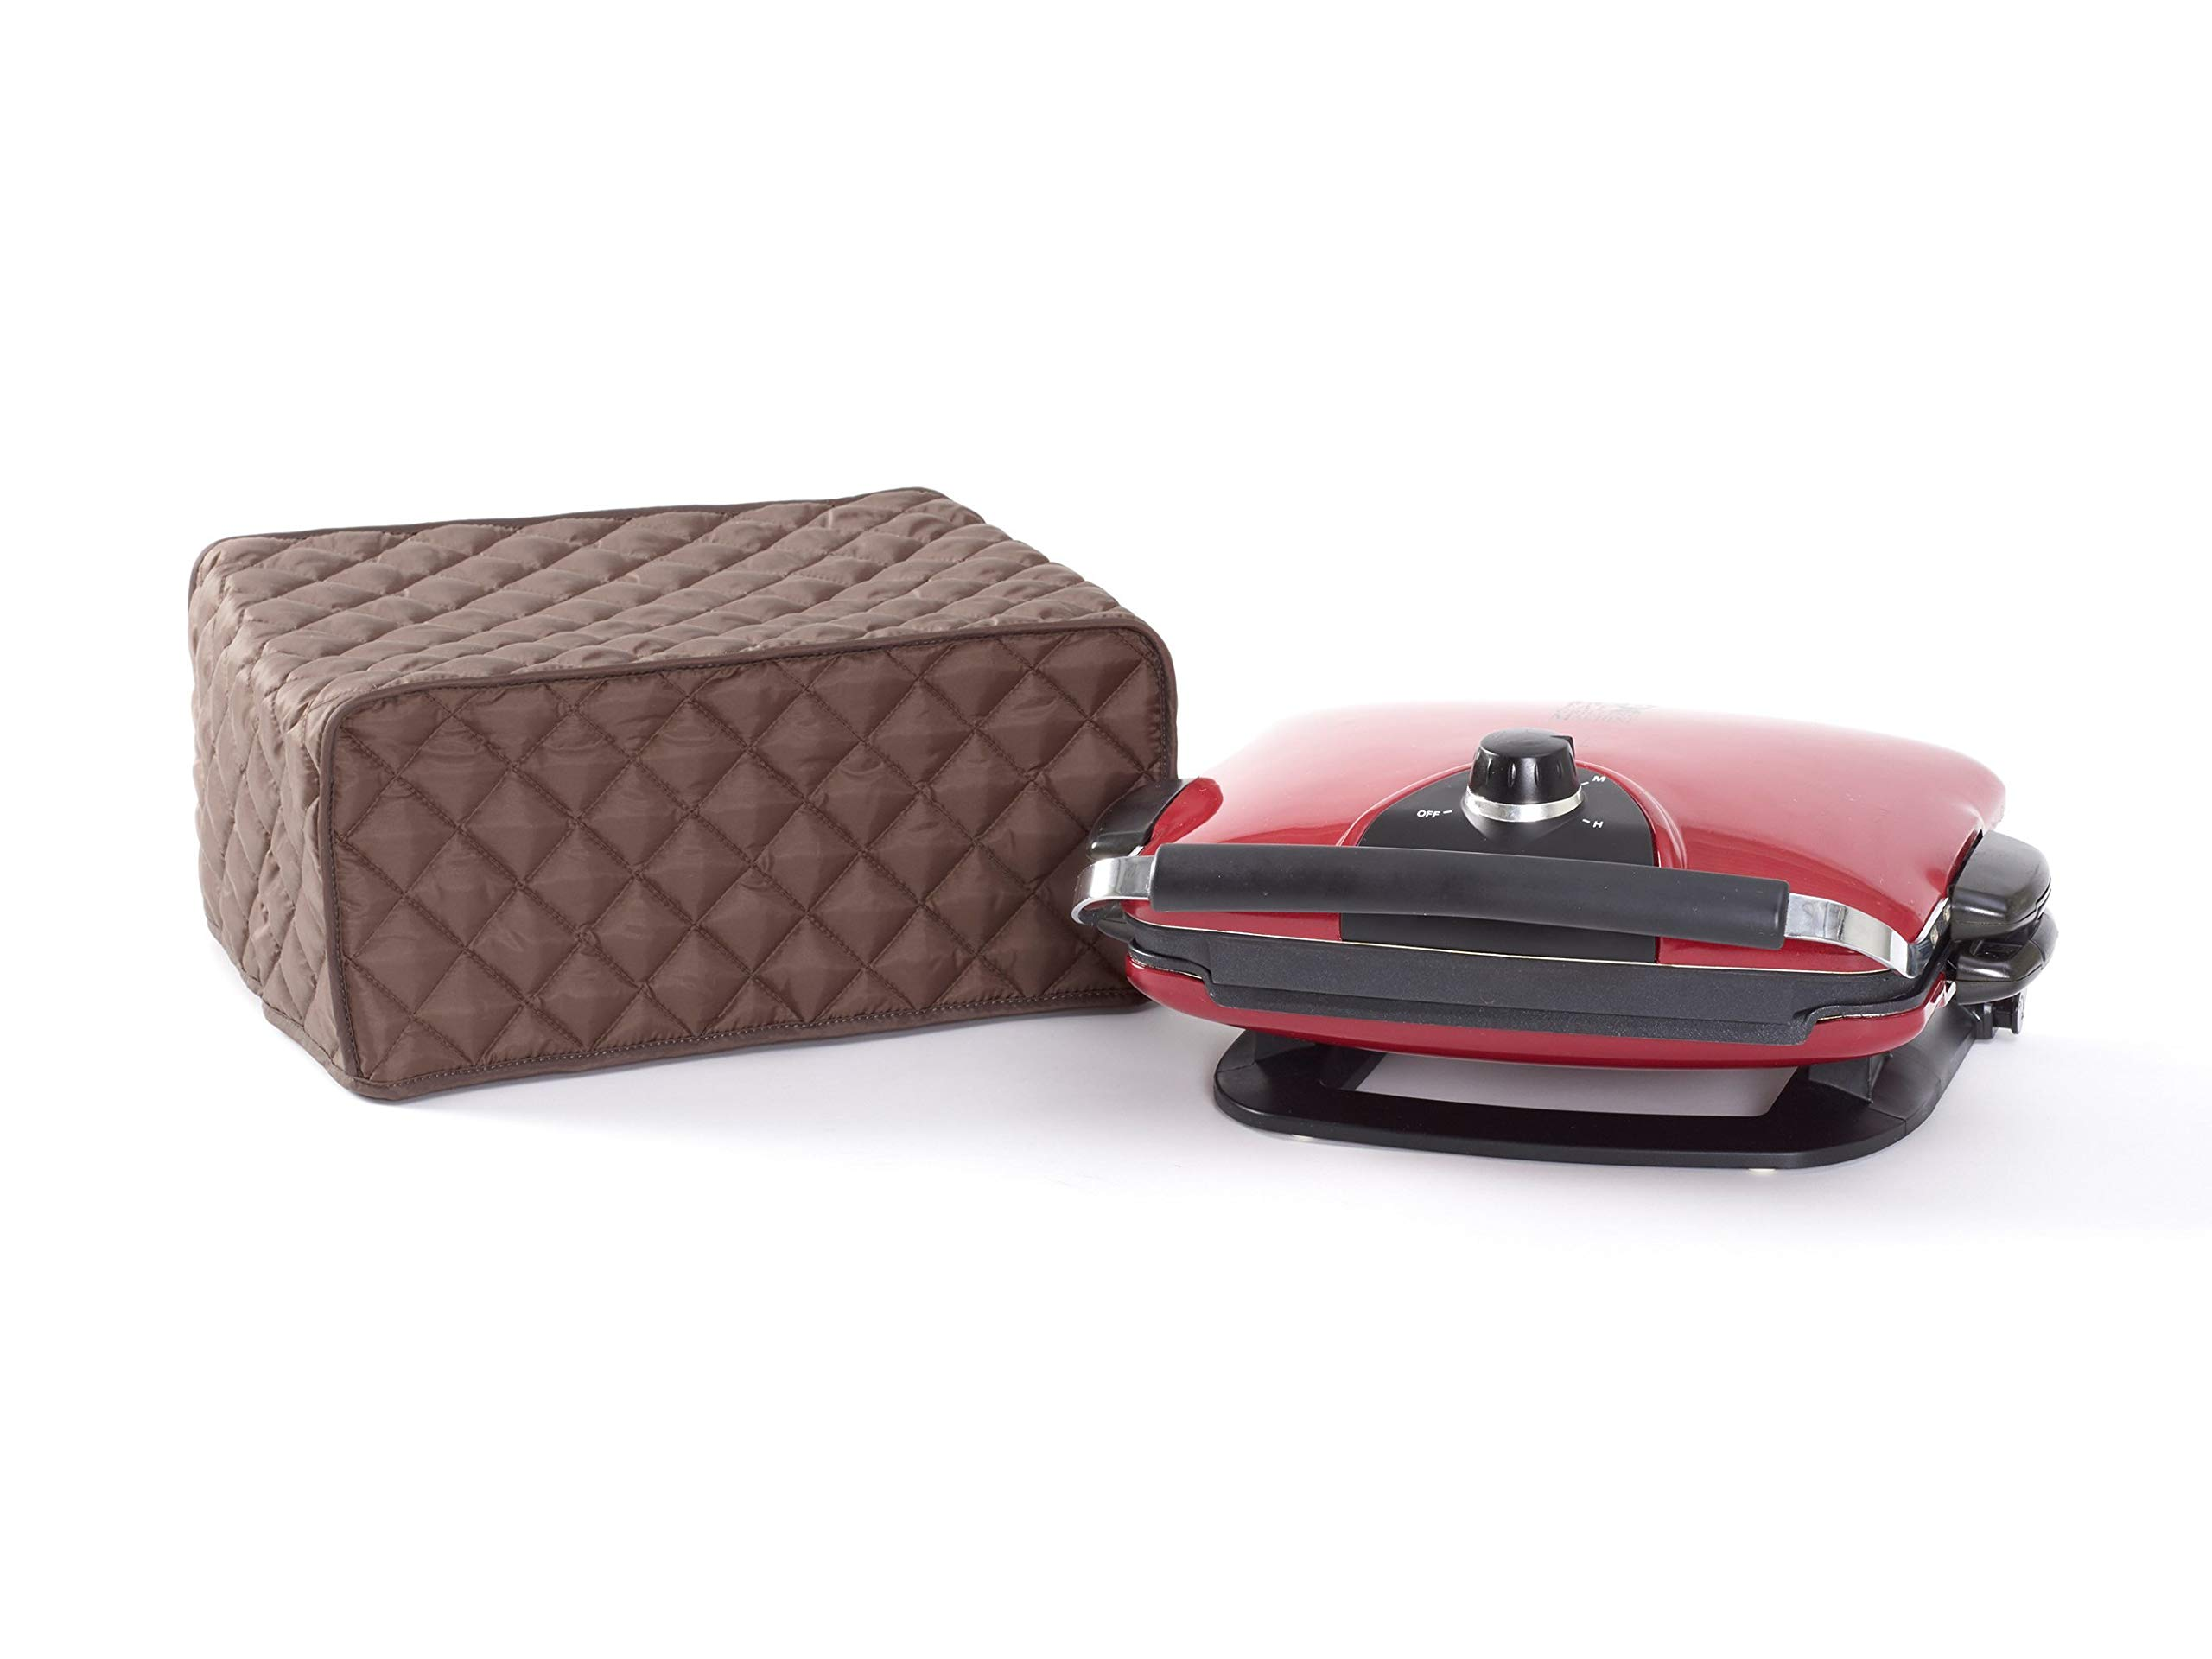 Covermates Keepsakes – Foreman Grill – Dust Protection - Stain Resistant - Washable – Appliance Cover - Bronze